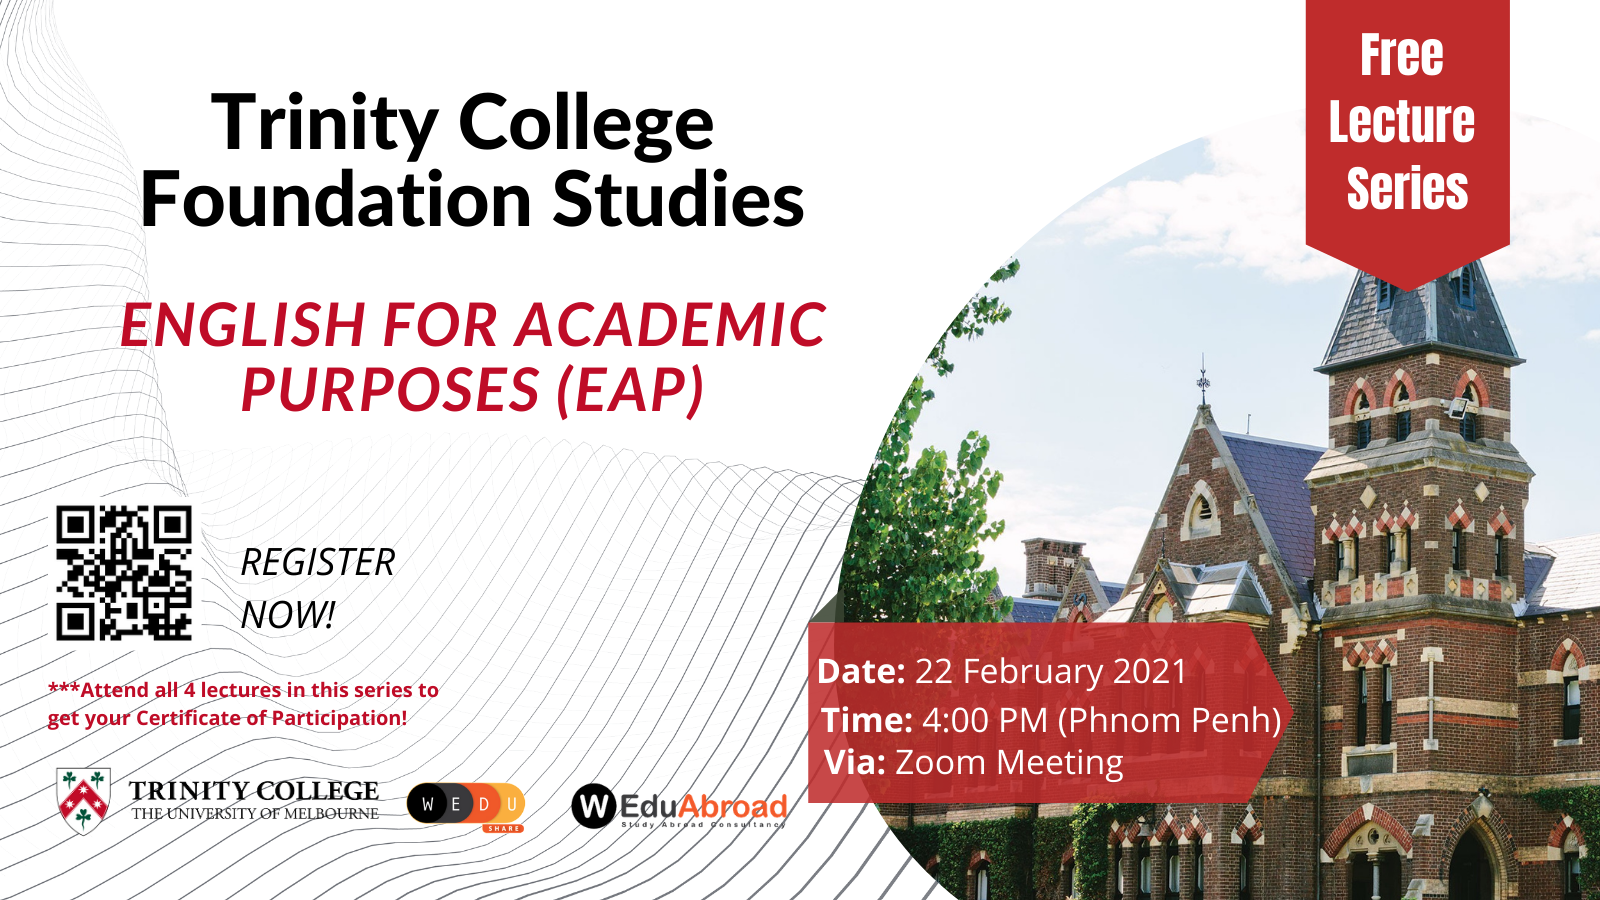 Trinity College Foundation Studies FREE Lecture Series English for Academic Purposes (EAP)